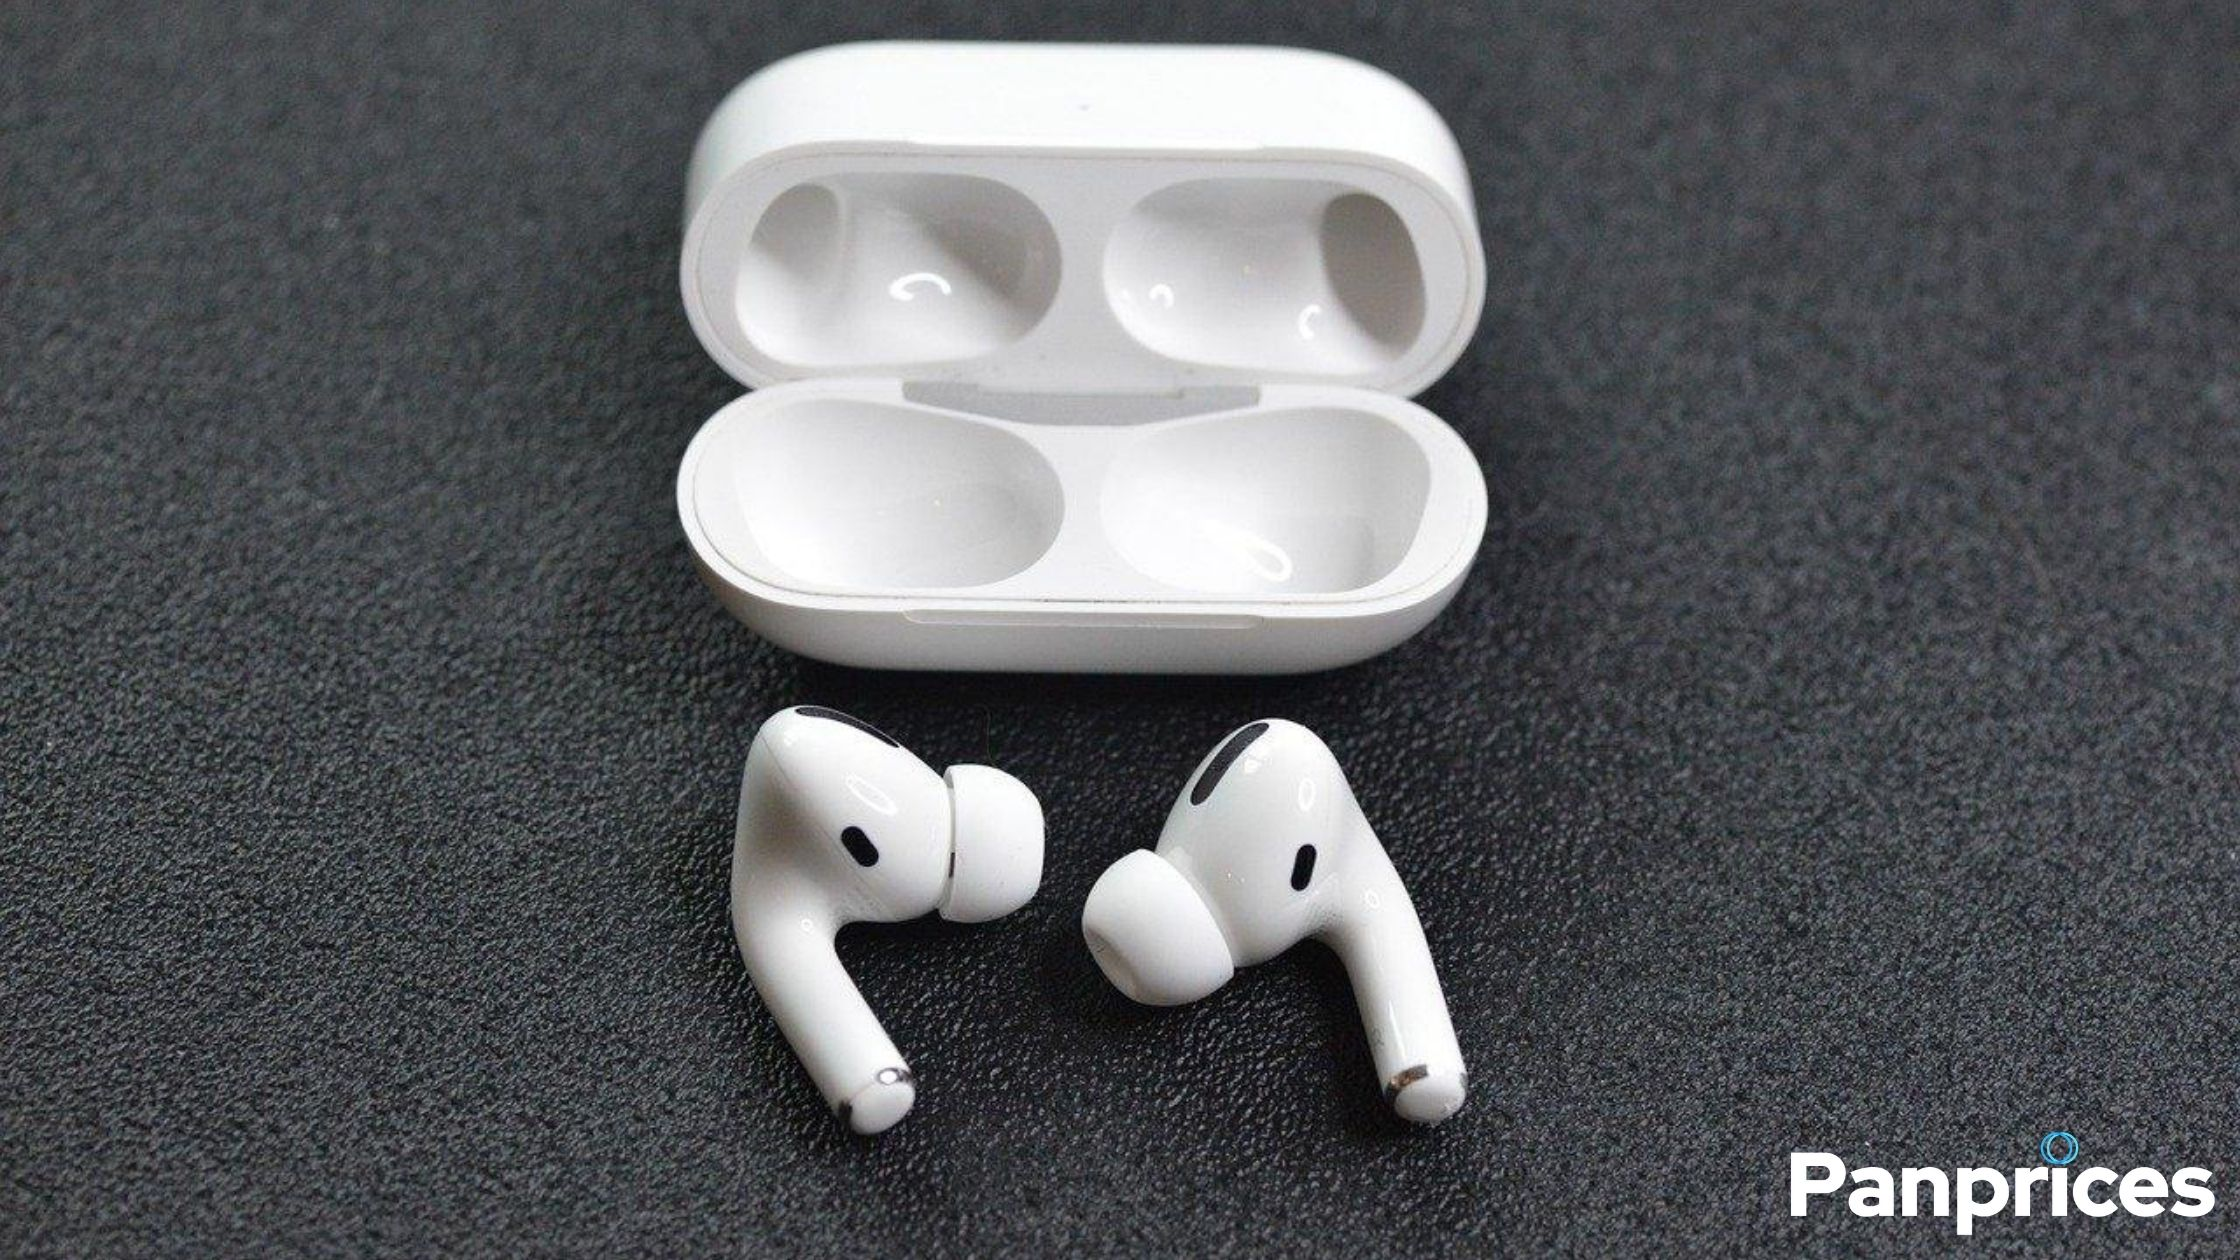 Product of the Week: Apple AirPods Pro